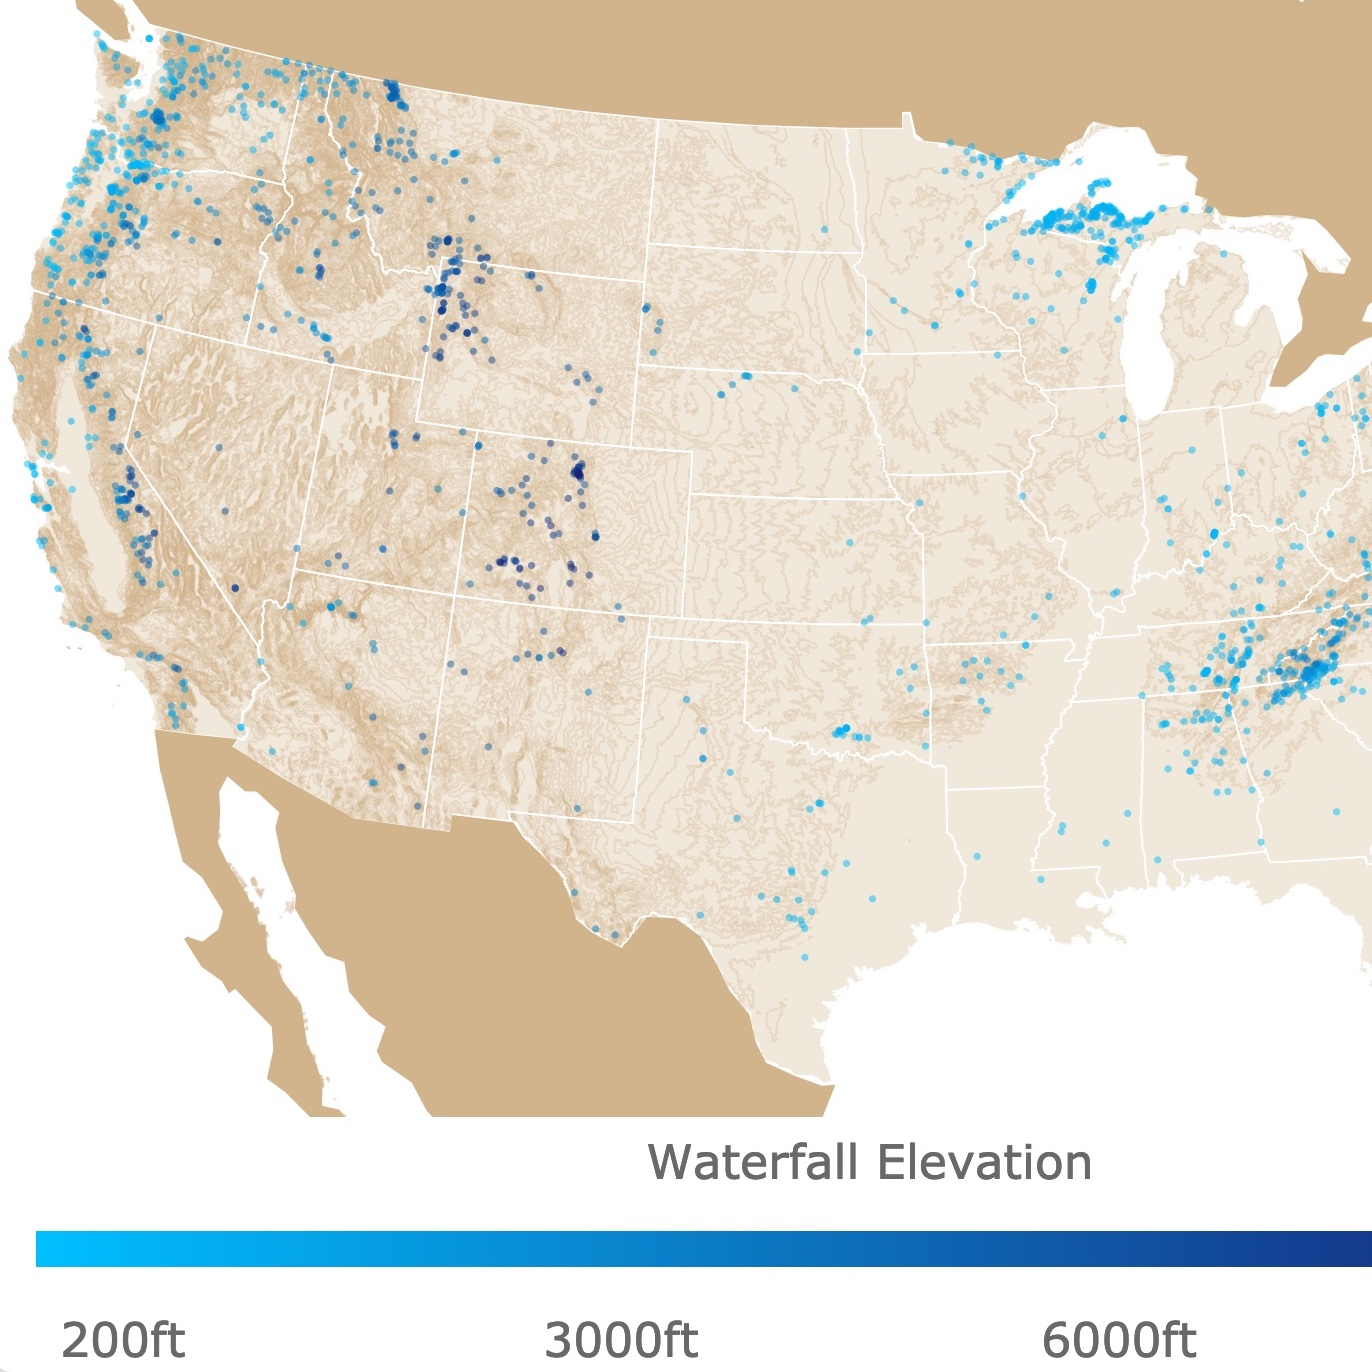 Map of waterfalls in the US